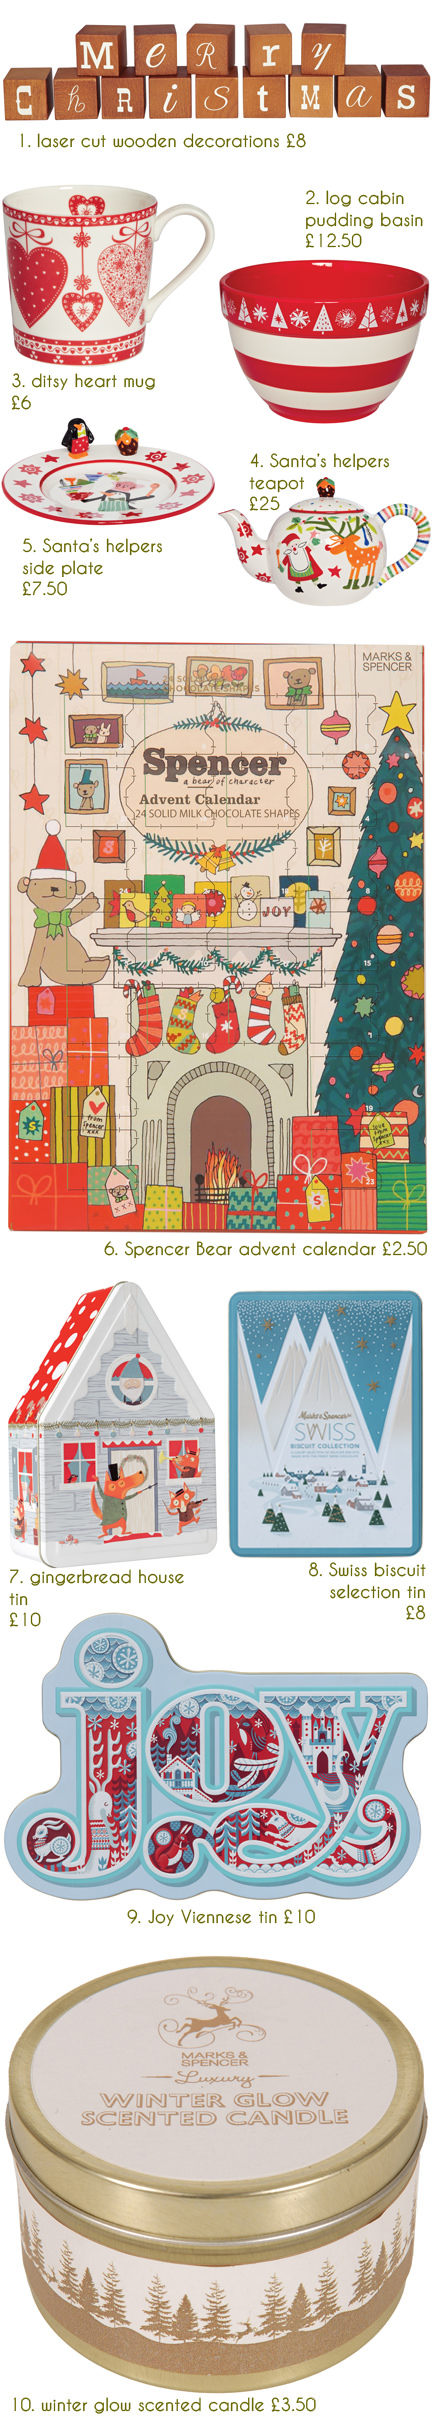 selection of festive Christmas items available at Marks and Spencer